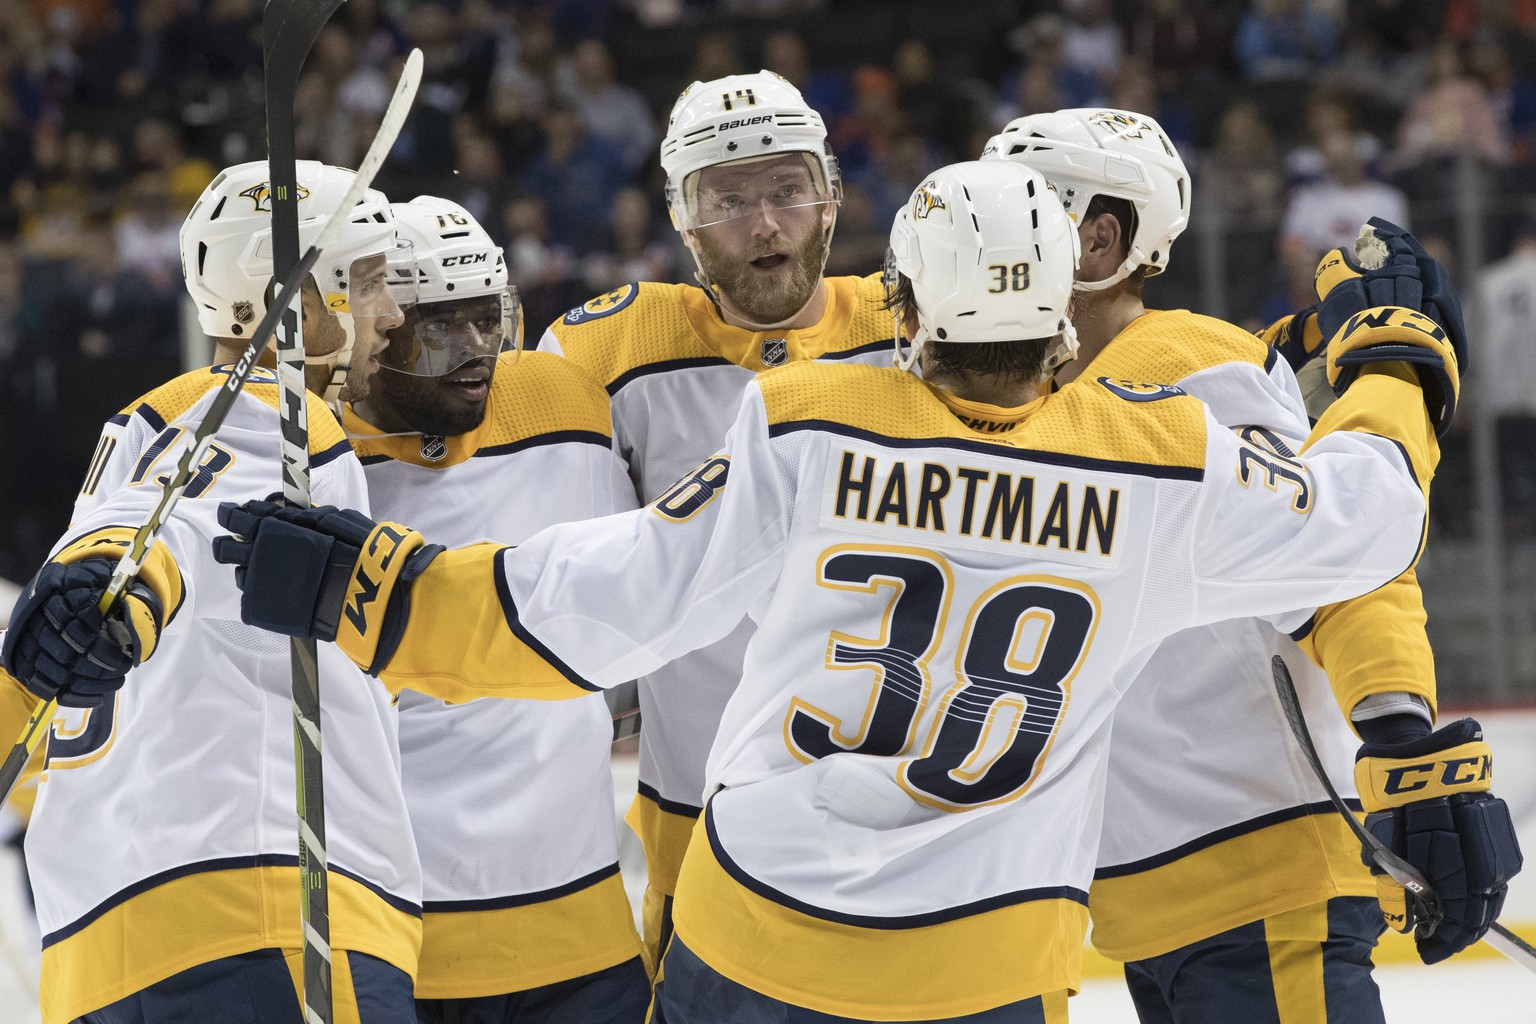 Nashville Predators defenseman Mattias Ekholm, center, celebrates scoring a goal with his team mates during the first period of an NHL hockey game against the New York Islanders, Saturday, Oct. 6, 2018, in New York. (AP Photo/Mary Altaffer)